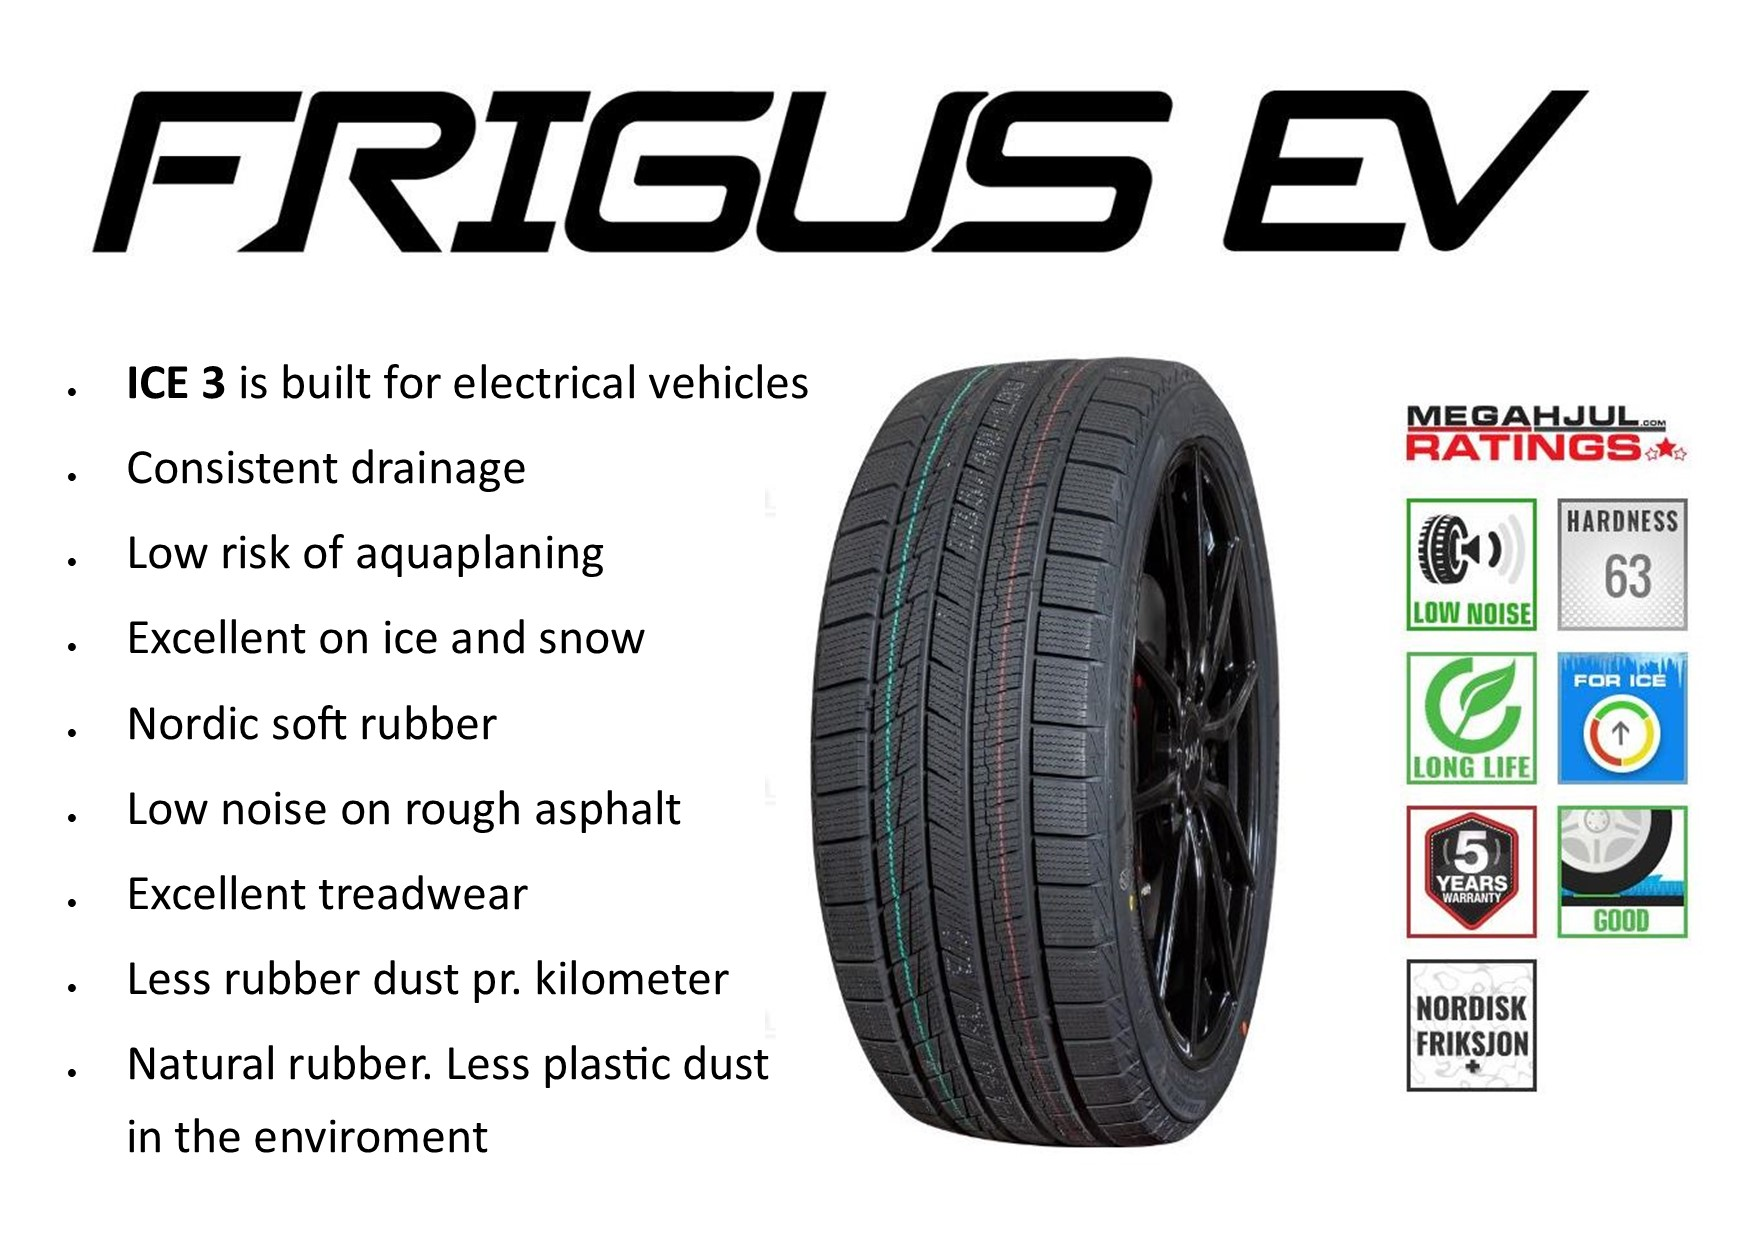 Frigus-ev-winter-tire-for-skilled-drivers